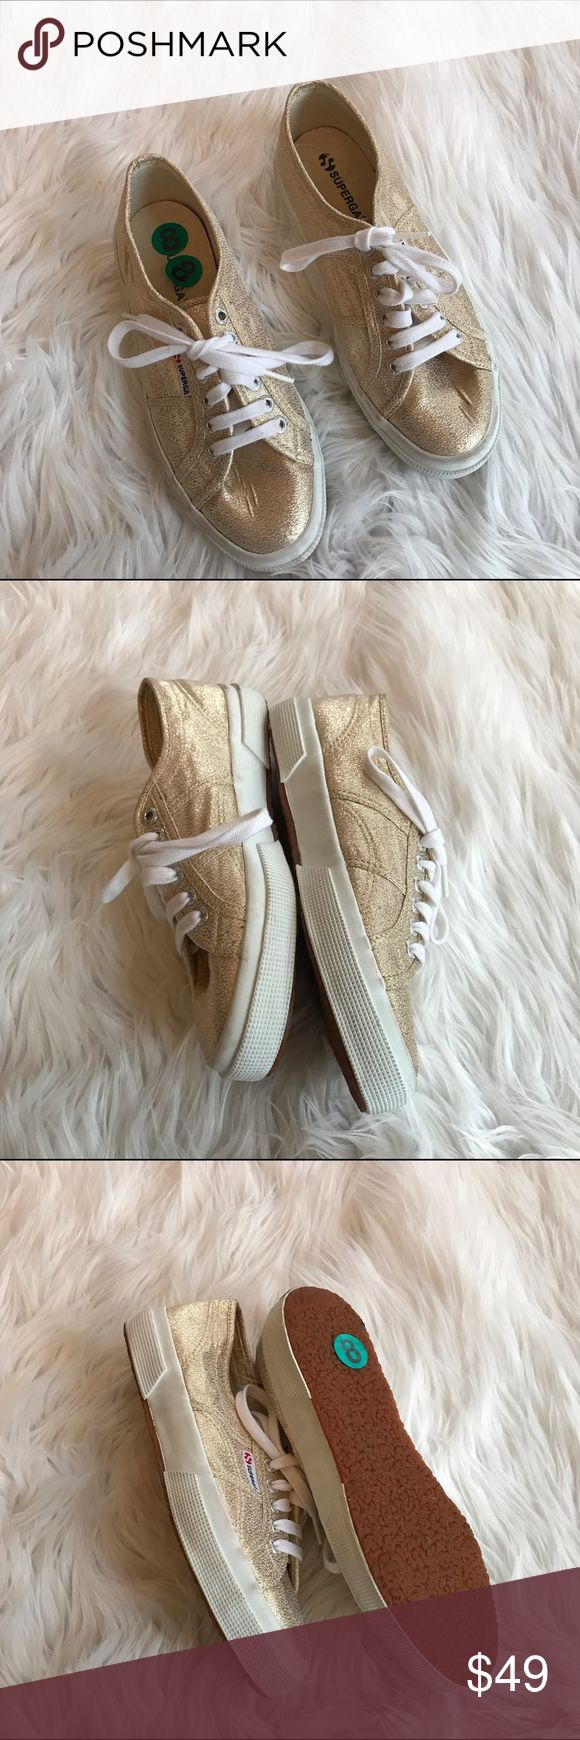 💙💙 GOLD TENNIS SHOES B14 These are currently in stores at Anthro. Does not come with original box Condition: EUC besides a little dirty on white sides  Material: canvas upper  Item location: bin 14   **bundles save 10%** no trades/no modeling/no asking for lowest Anthropologie Shoes Sneakers